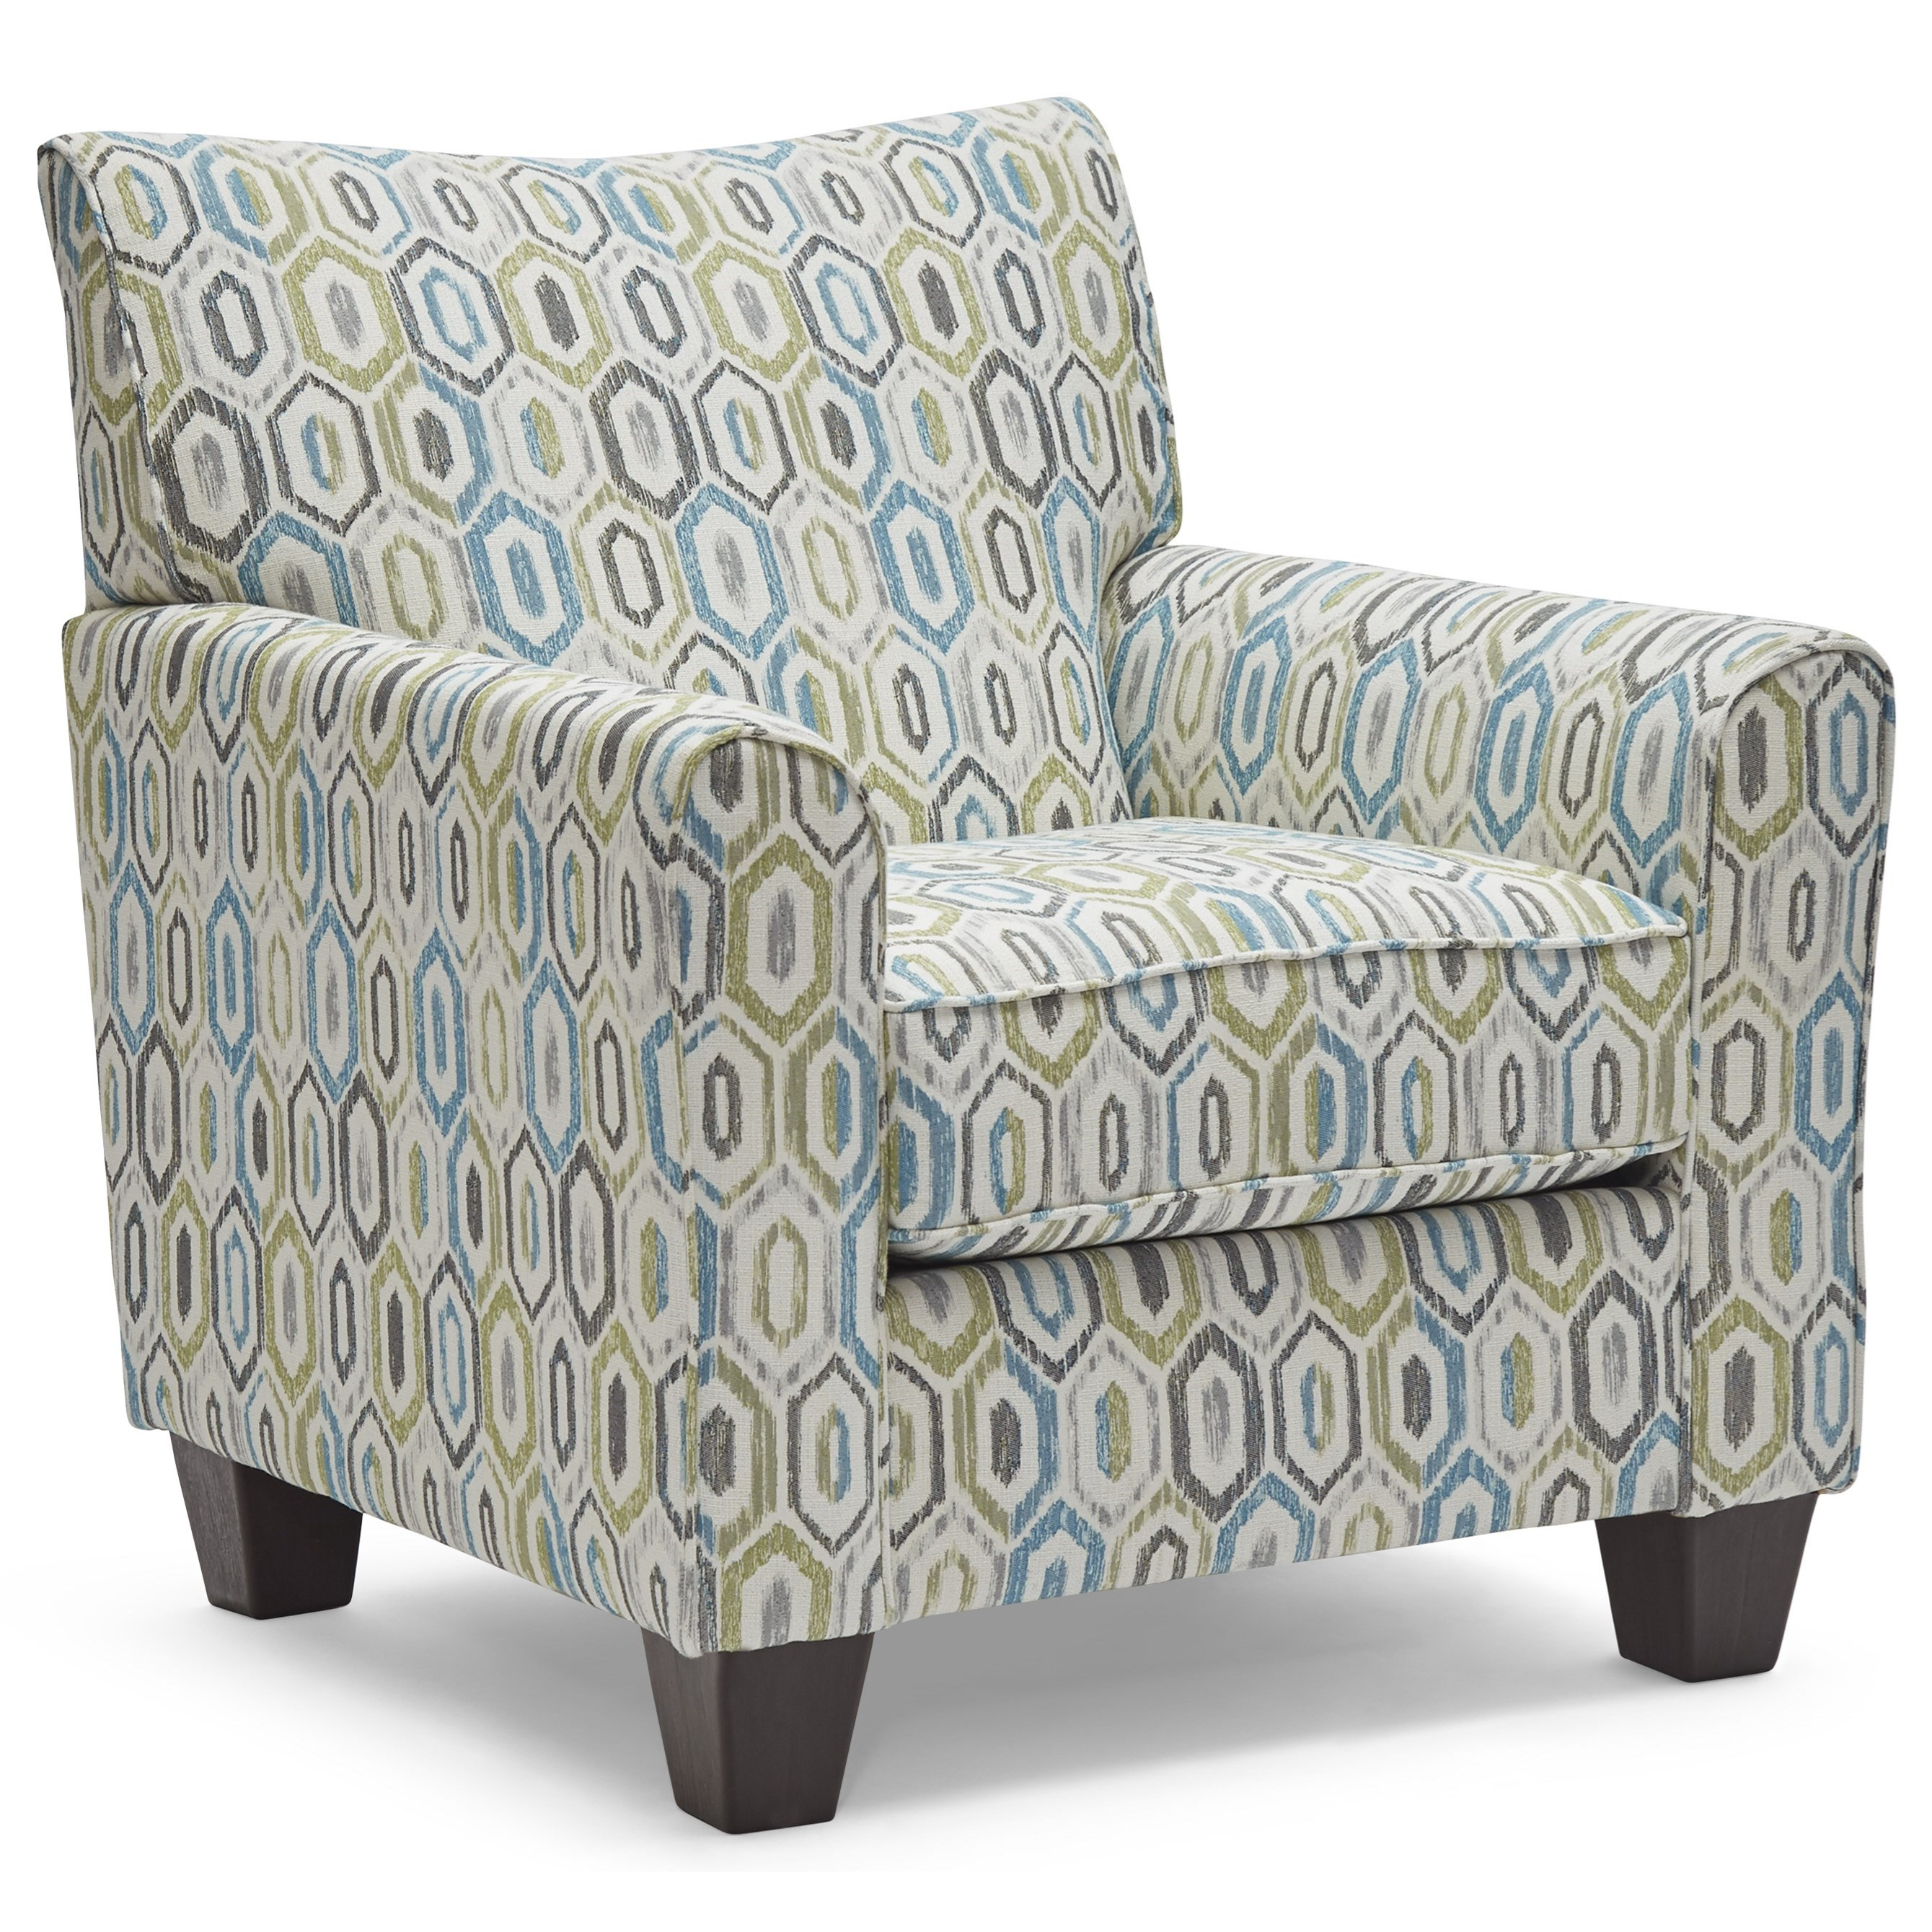 6547BR Accent Chair by United Furniture Industries at Dream Home Interiors